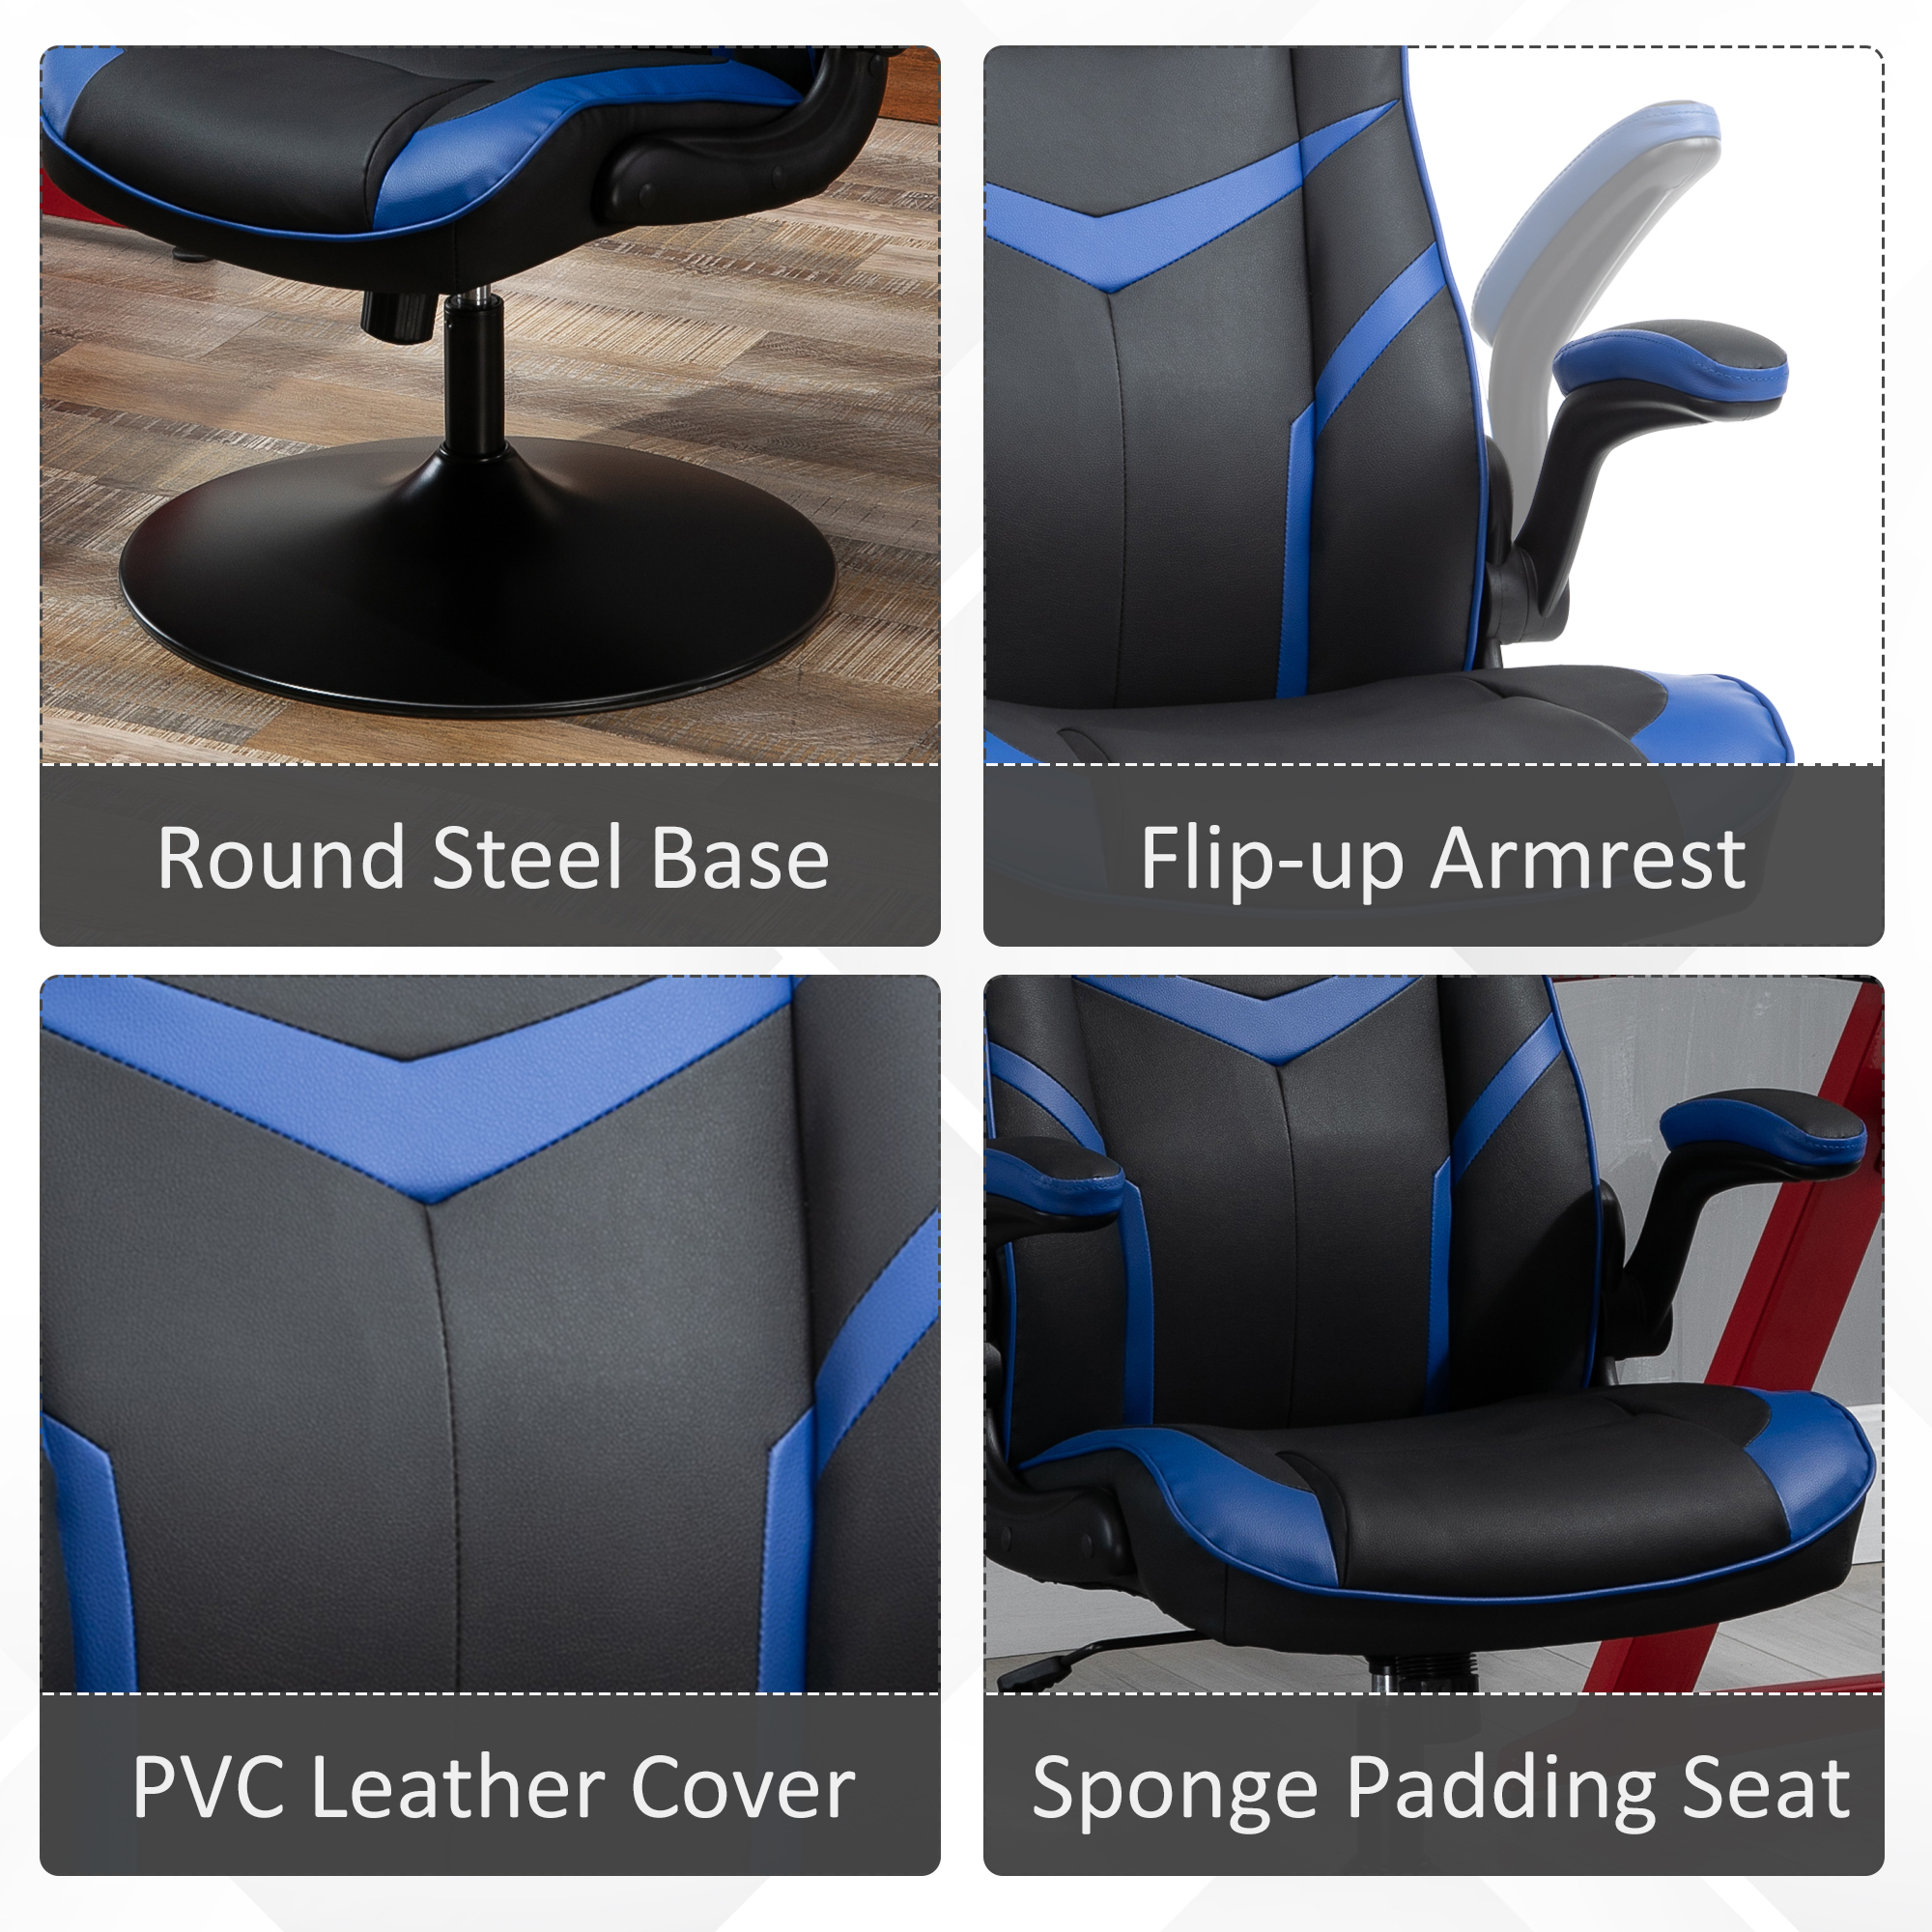 Swivel Office Furniture Chairs Stools, Round Base Gaming Chair